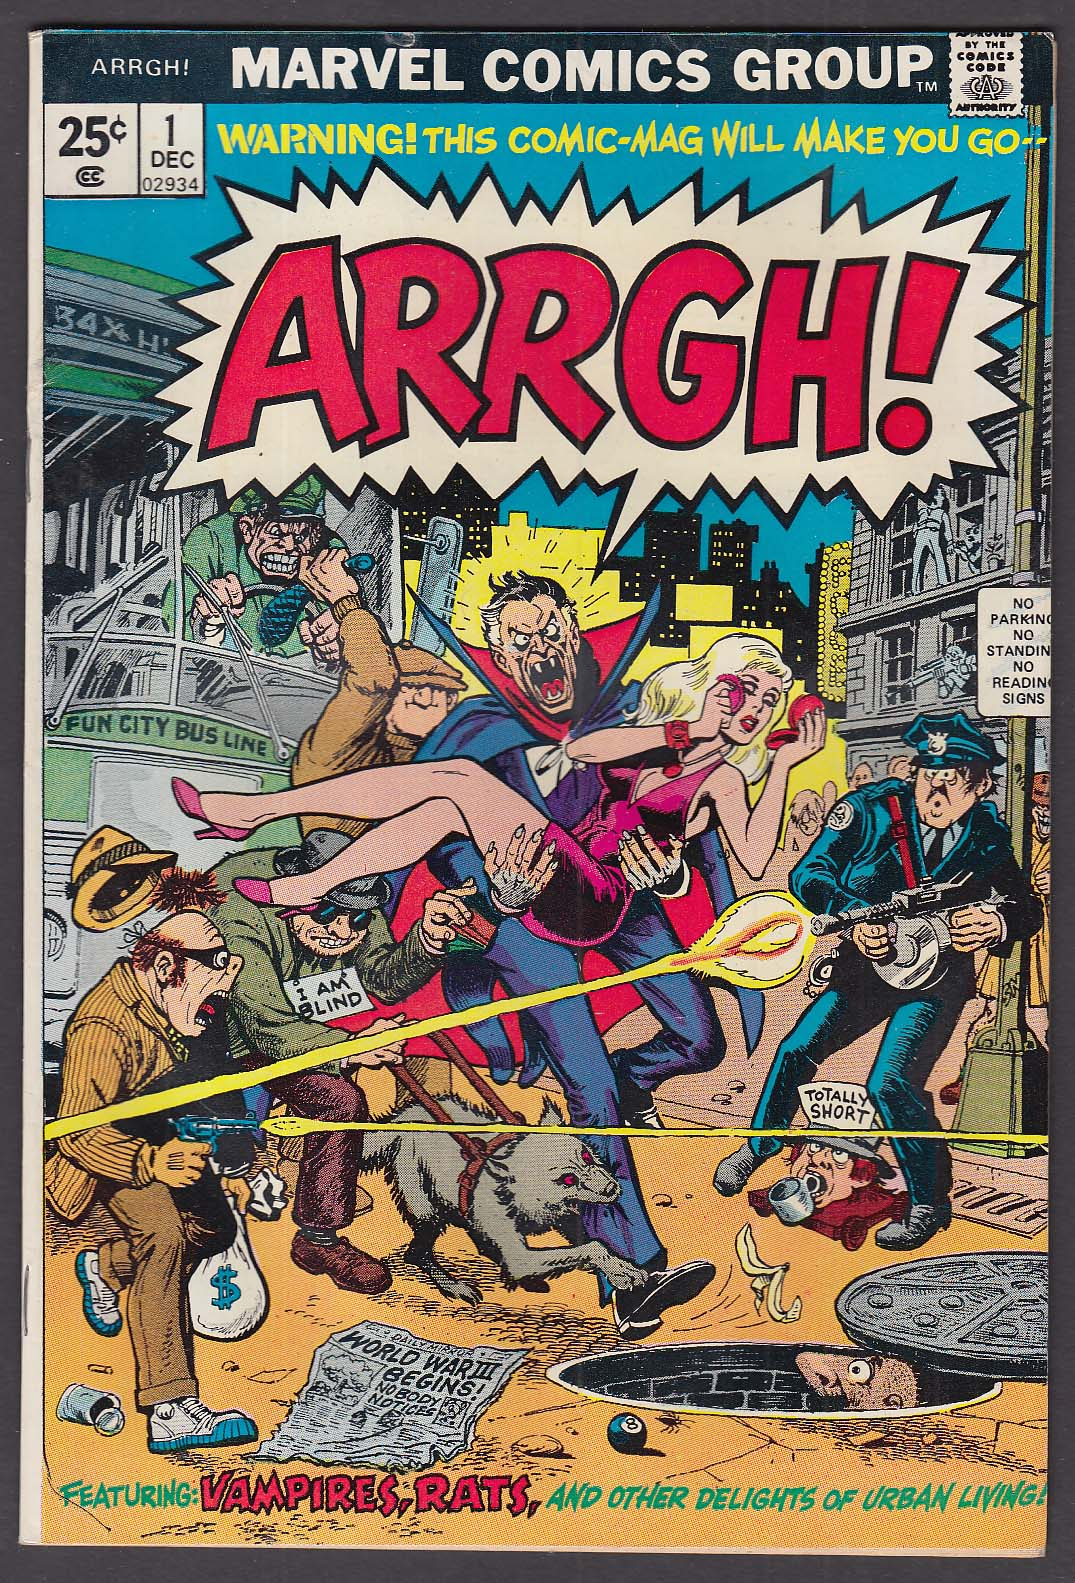 ARRGH Vol 1 #1 Marvel comic book 12 1974